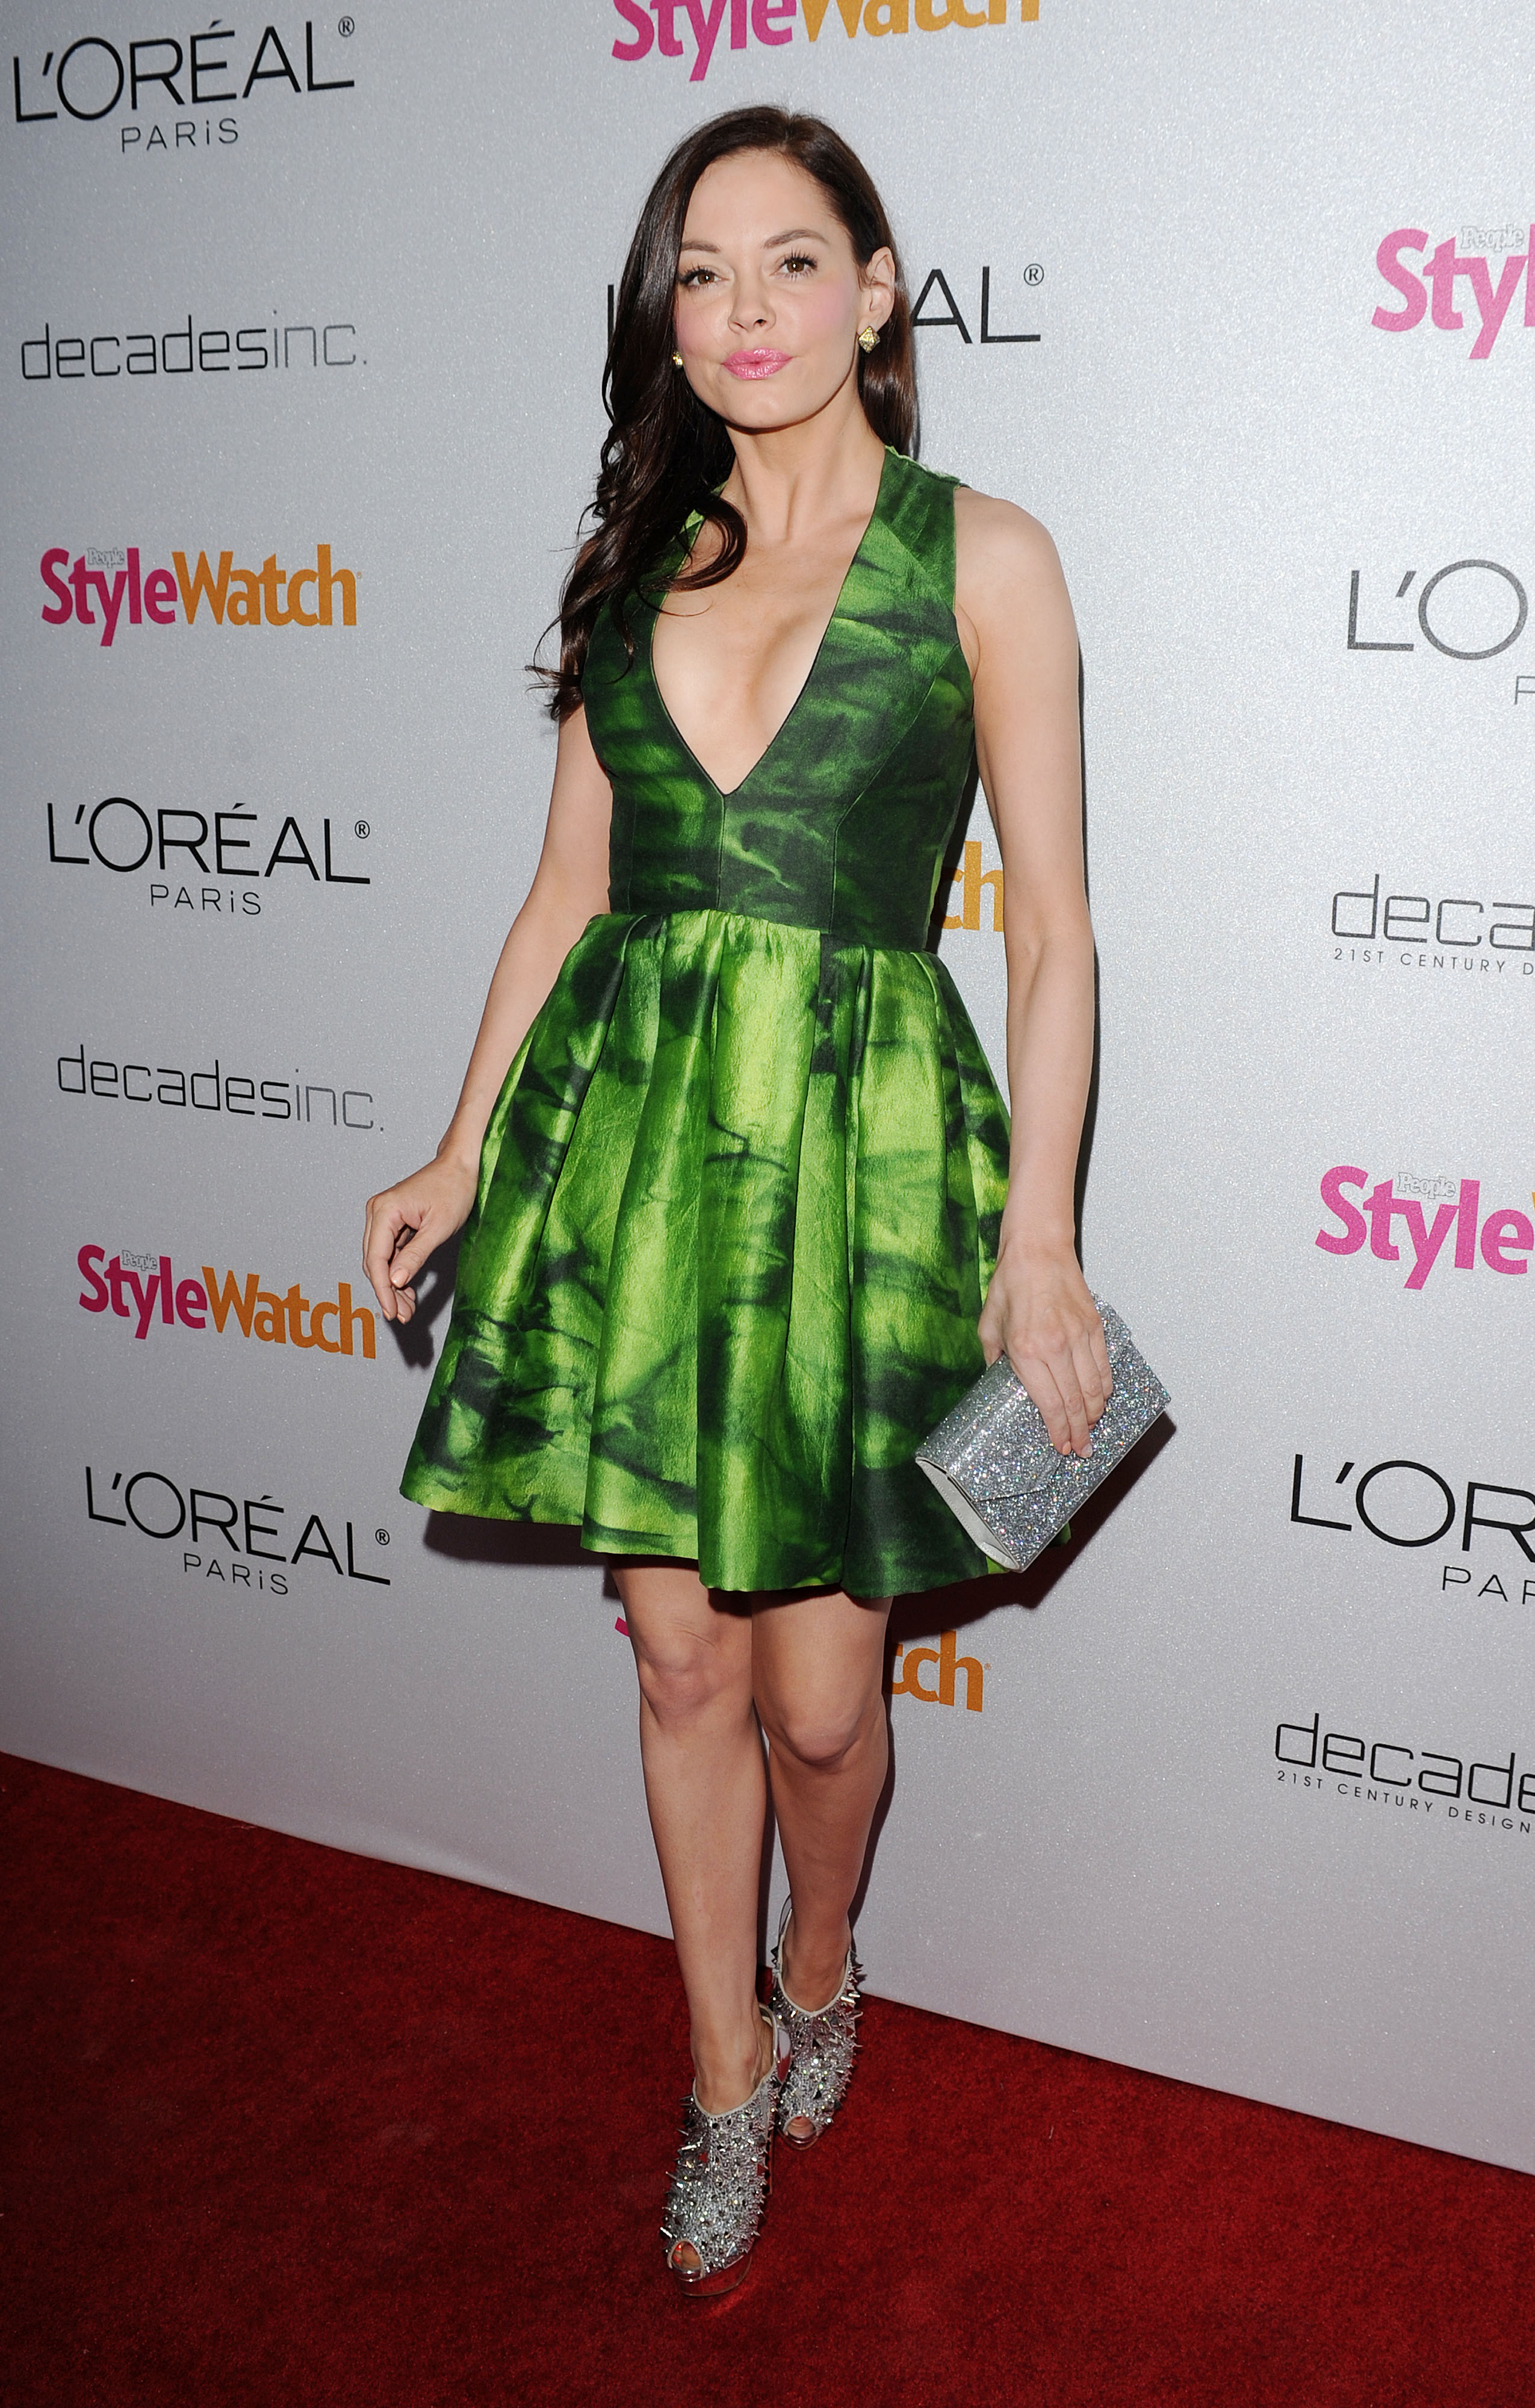 751965725_Rose_McGowan_People_StyleWatch_A_Night_of_Red_Carpet_Style_in_LA_January_27_2011_16_122_469lo.jpg